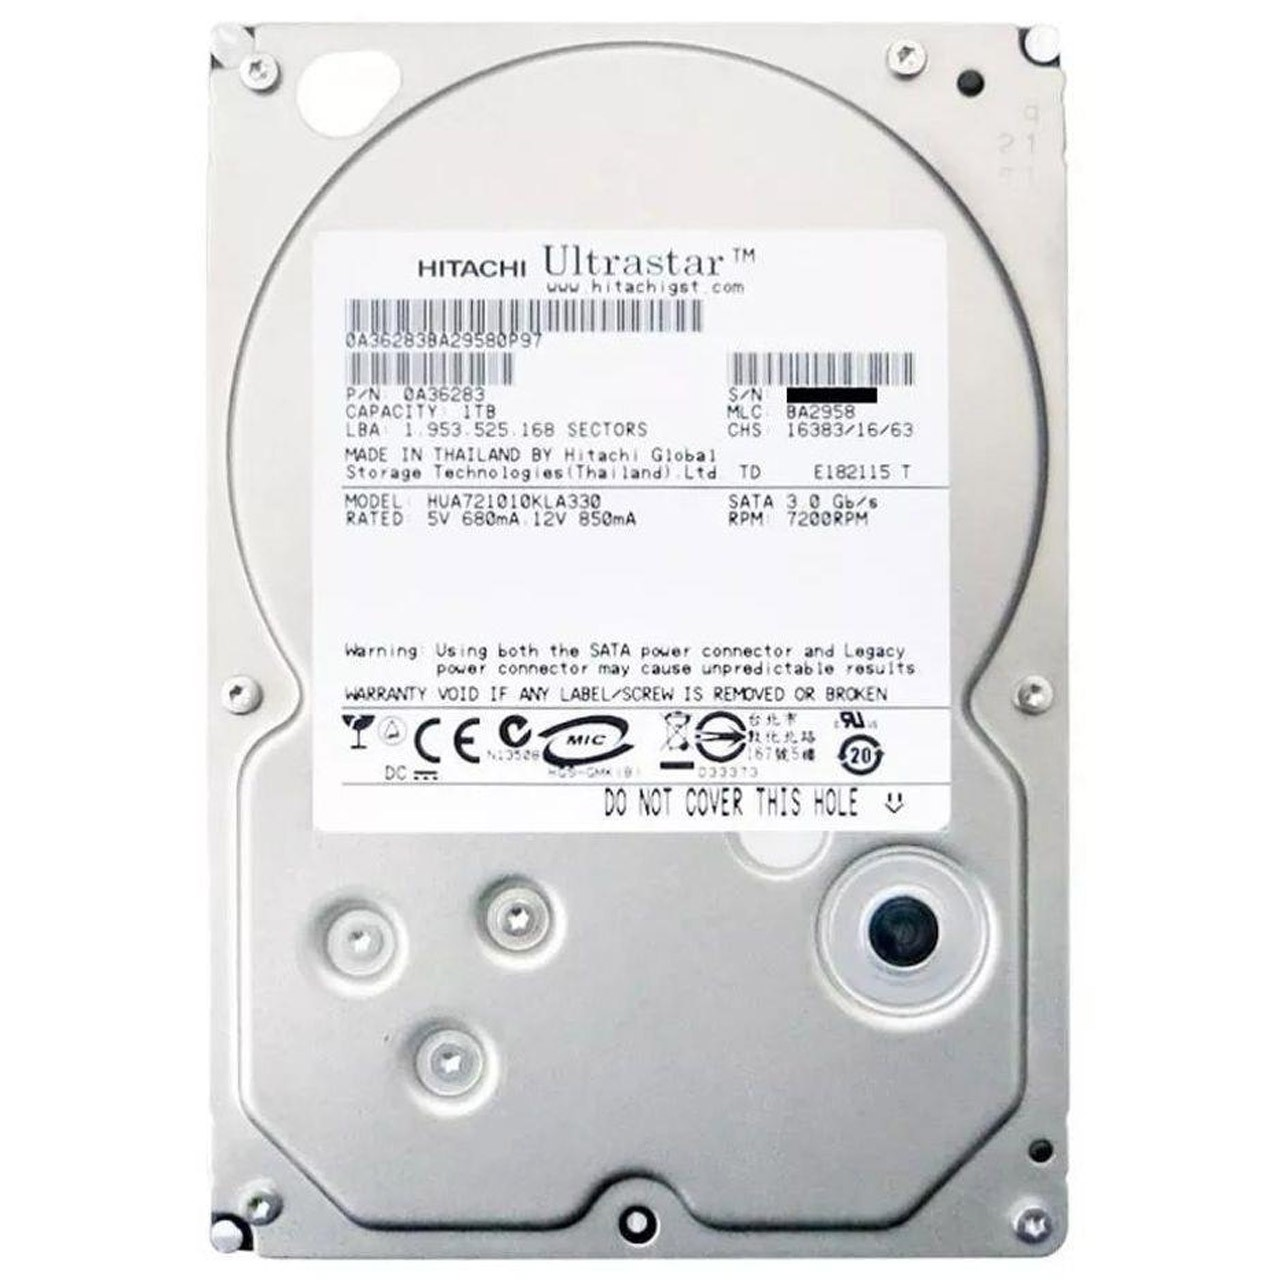 HD 1TB Hitachi HGST 7200RPM SATA 3Gb/s 32MB Cache - HITACHI 1TB